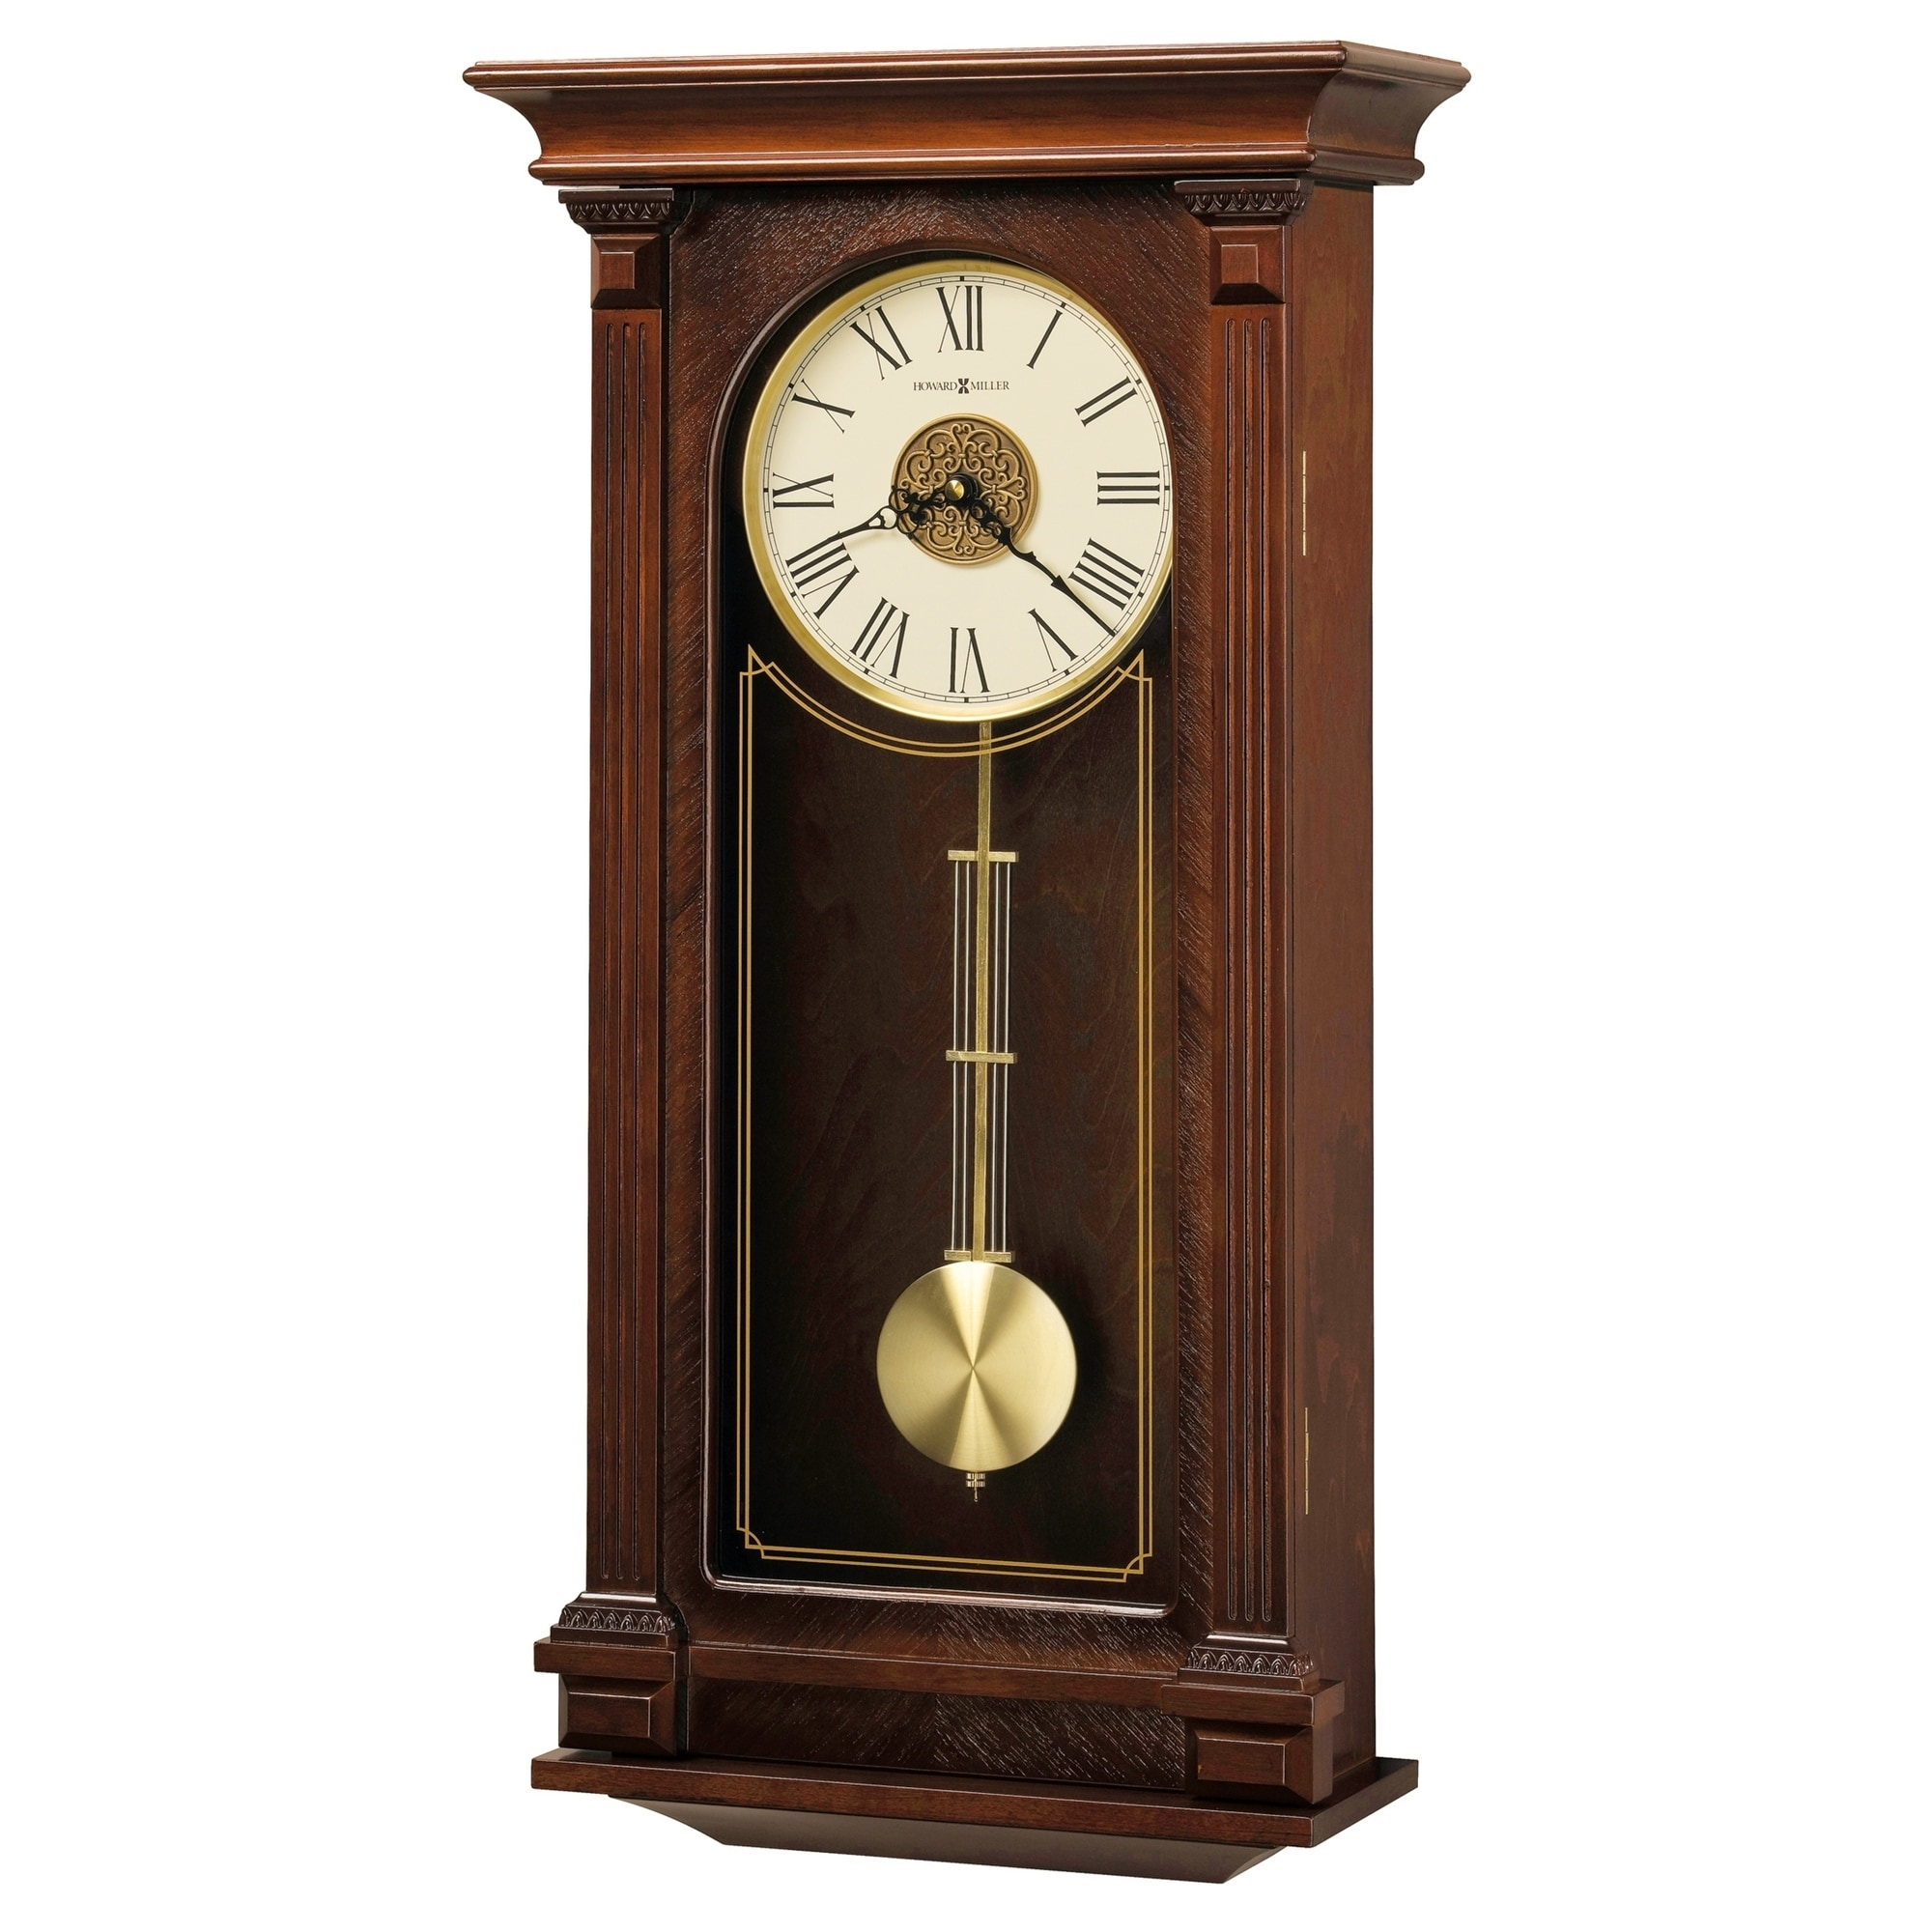 Wall Clock Design Howard Miller Sinclair Grandfather Clock Style Chiming Wall Clock With Pendulum Charming Vintage Old World Classic Design